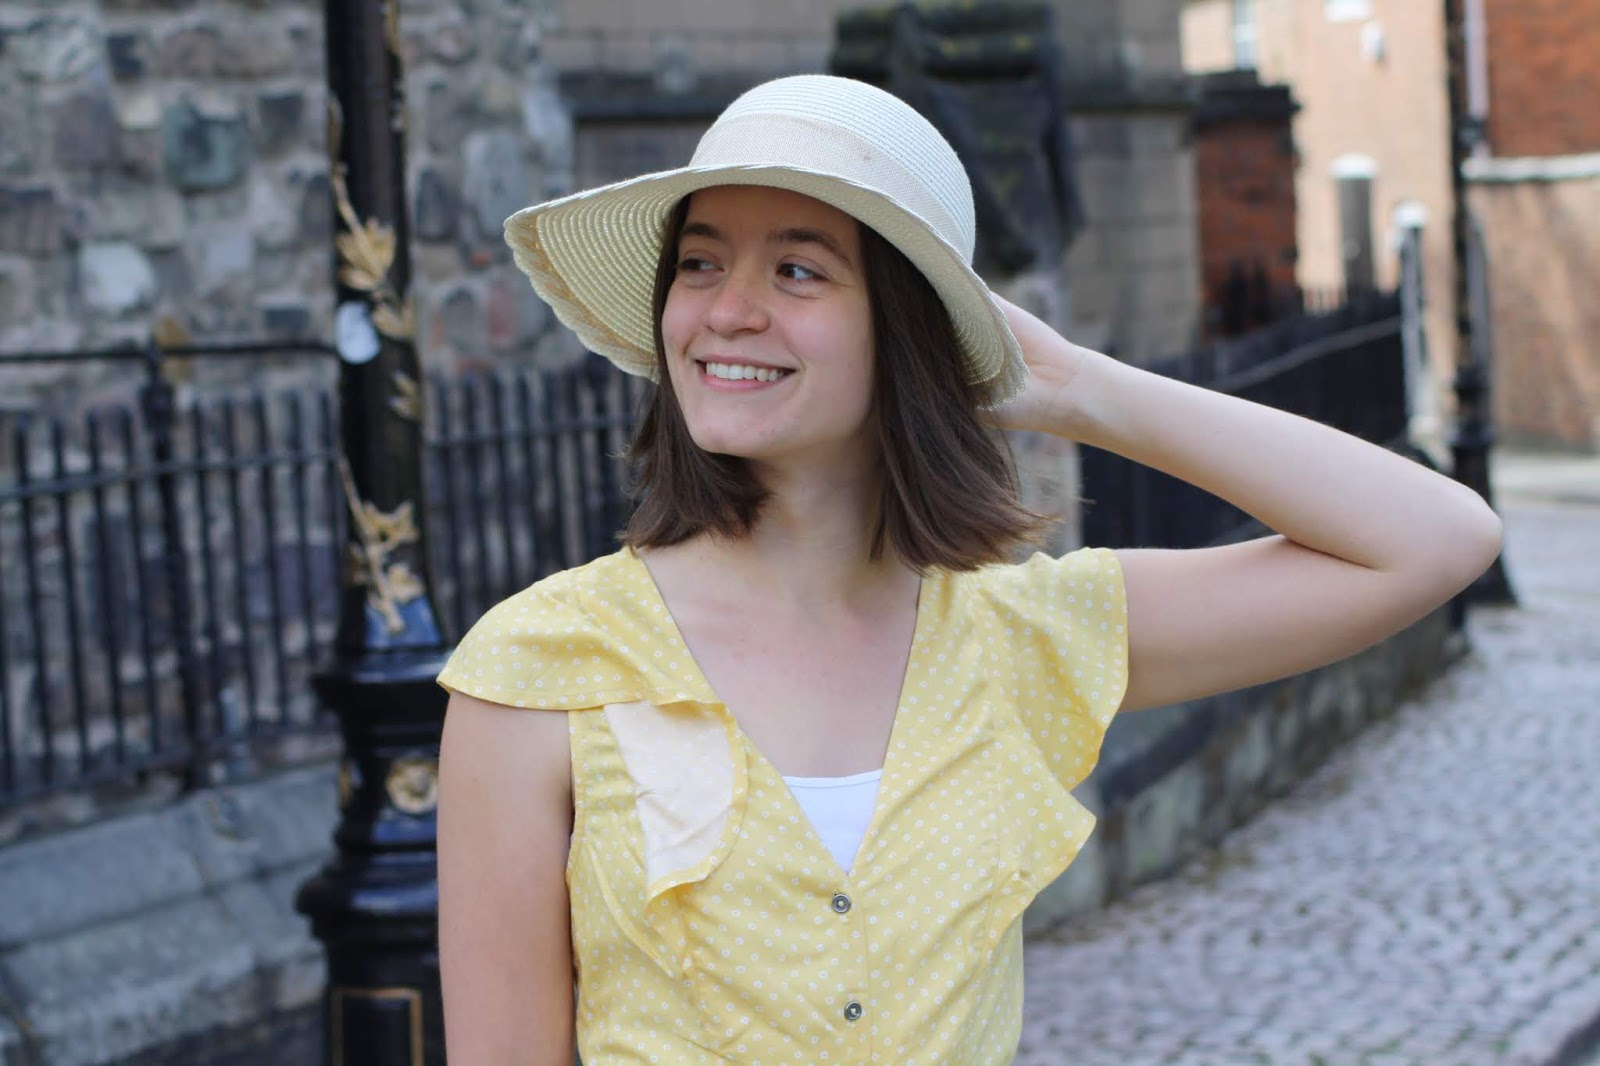 Abbey, wearing a yellow floaty dress, looks off to the left and touches the brim of her straw hat